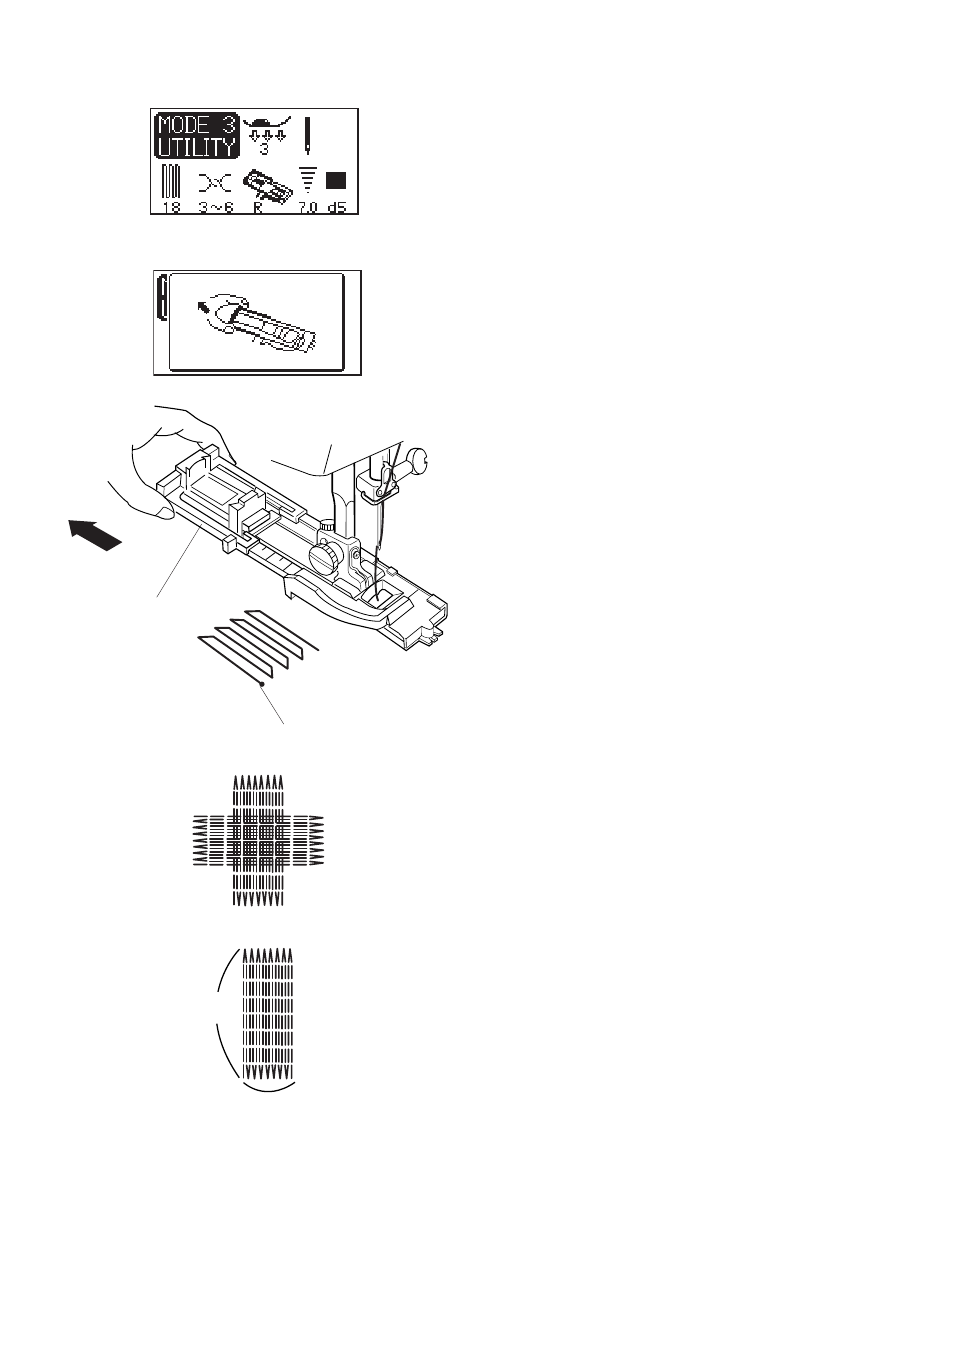 Janome Memory Craft 6500 User Manual | Page 53 / 78